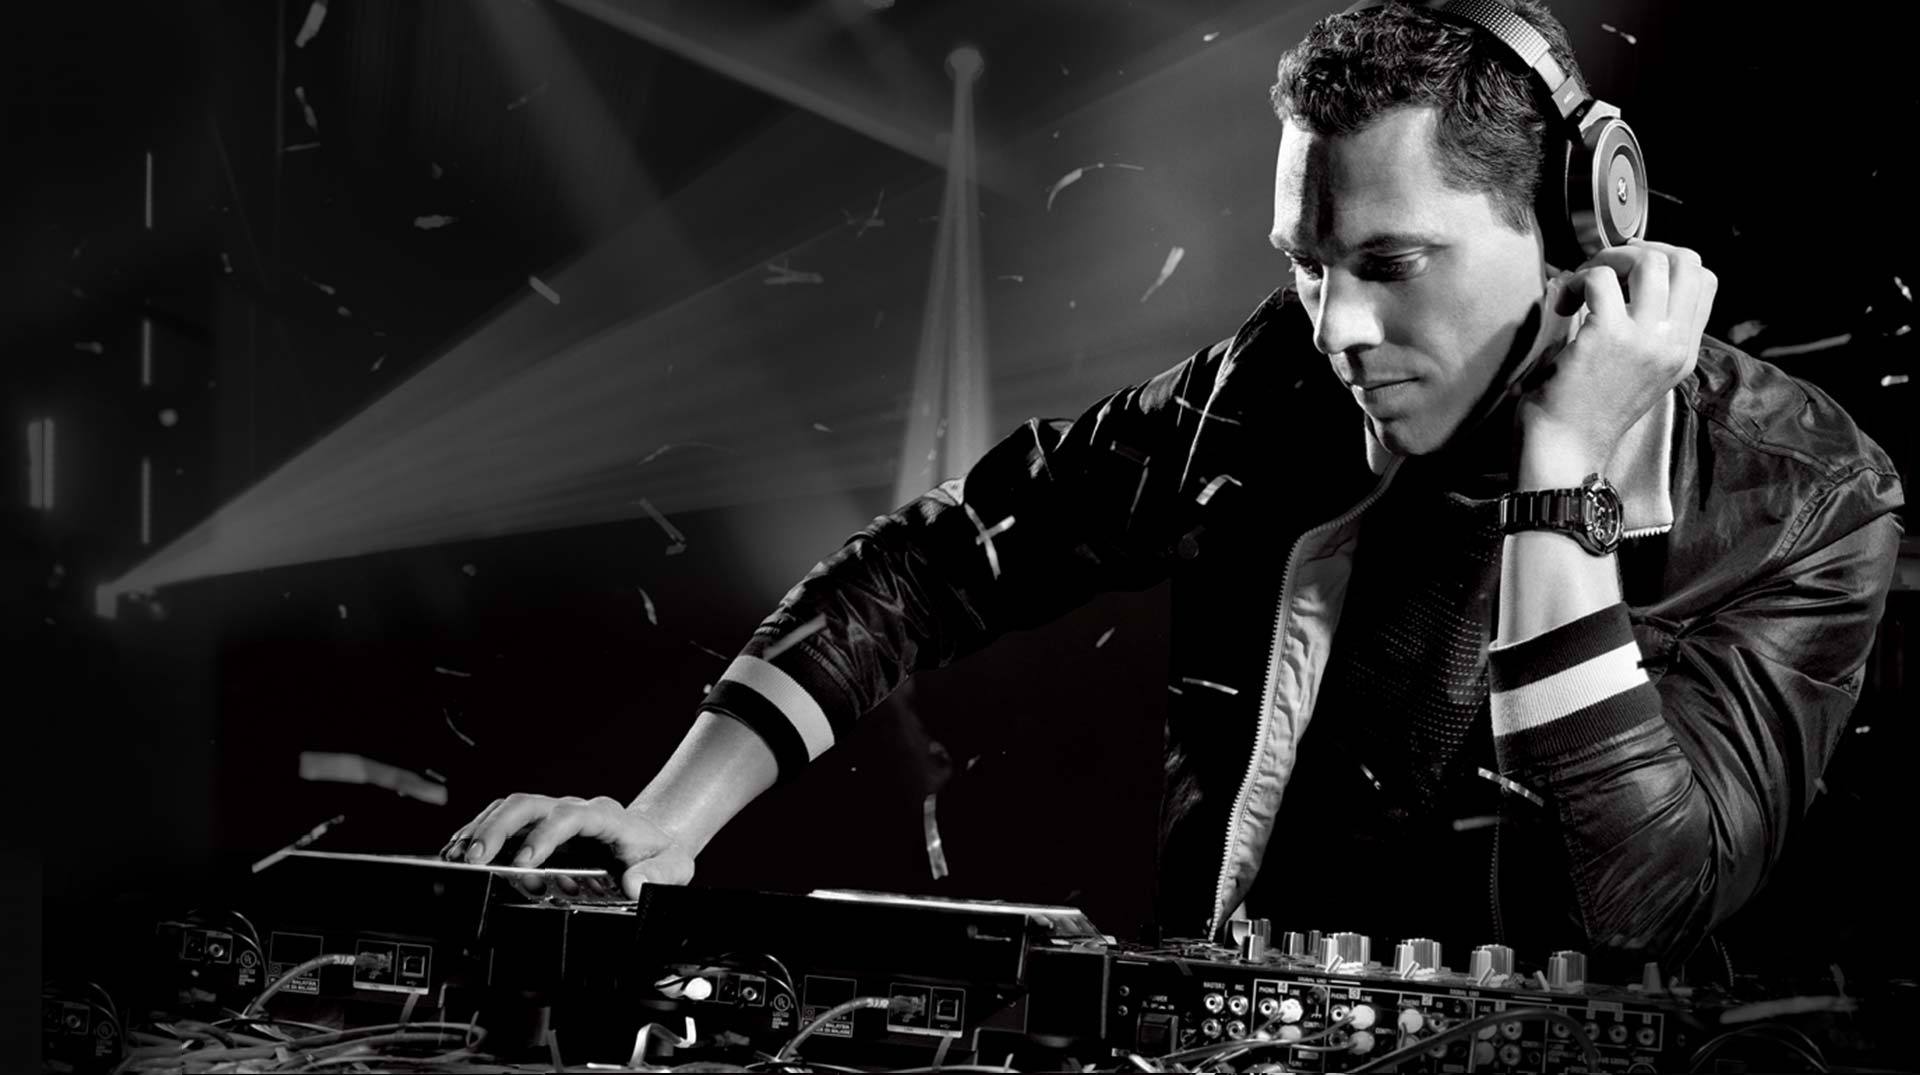 Tiesto & Mike Williams – I Want You (Video)